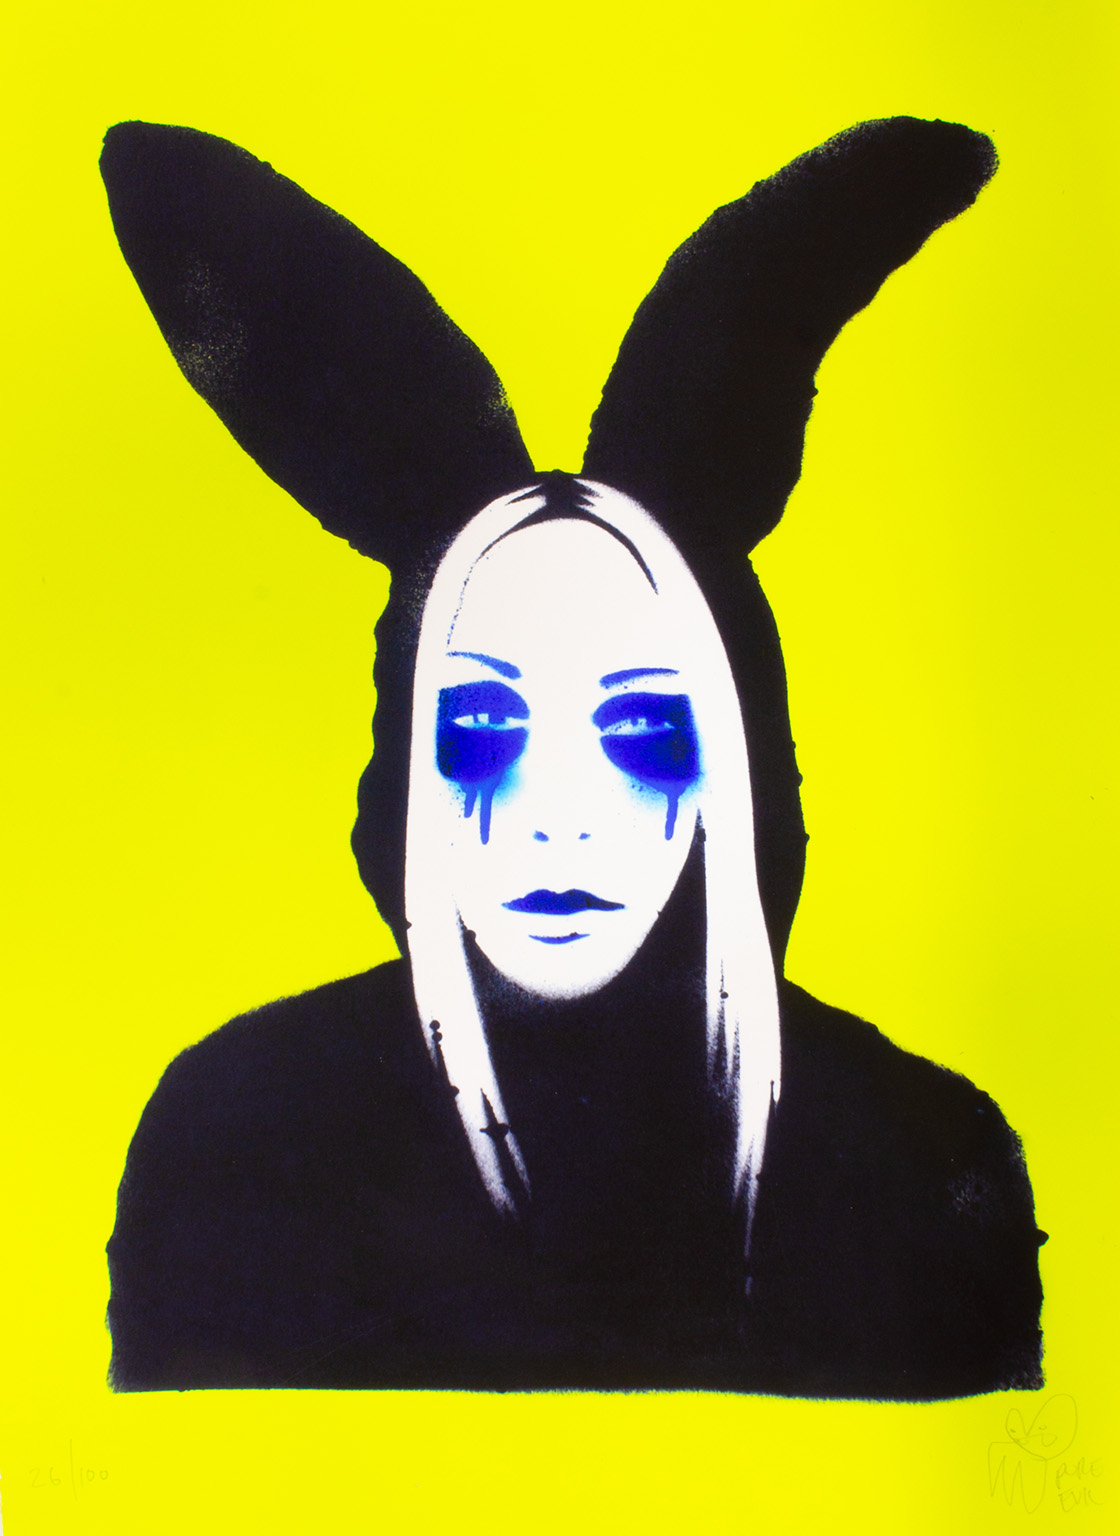 Bunny Girl by Pure Evil